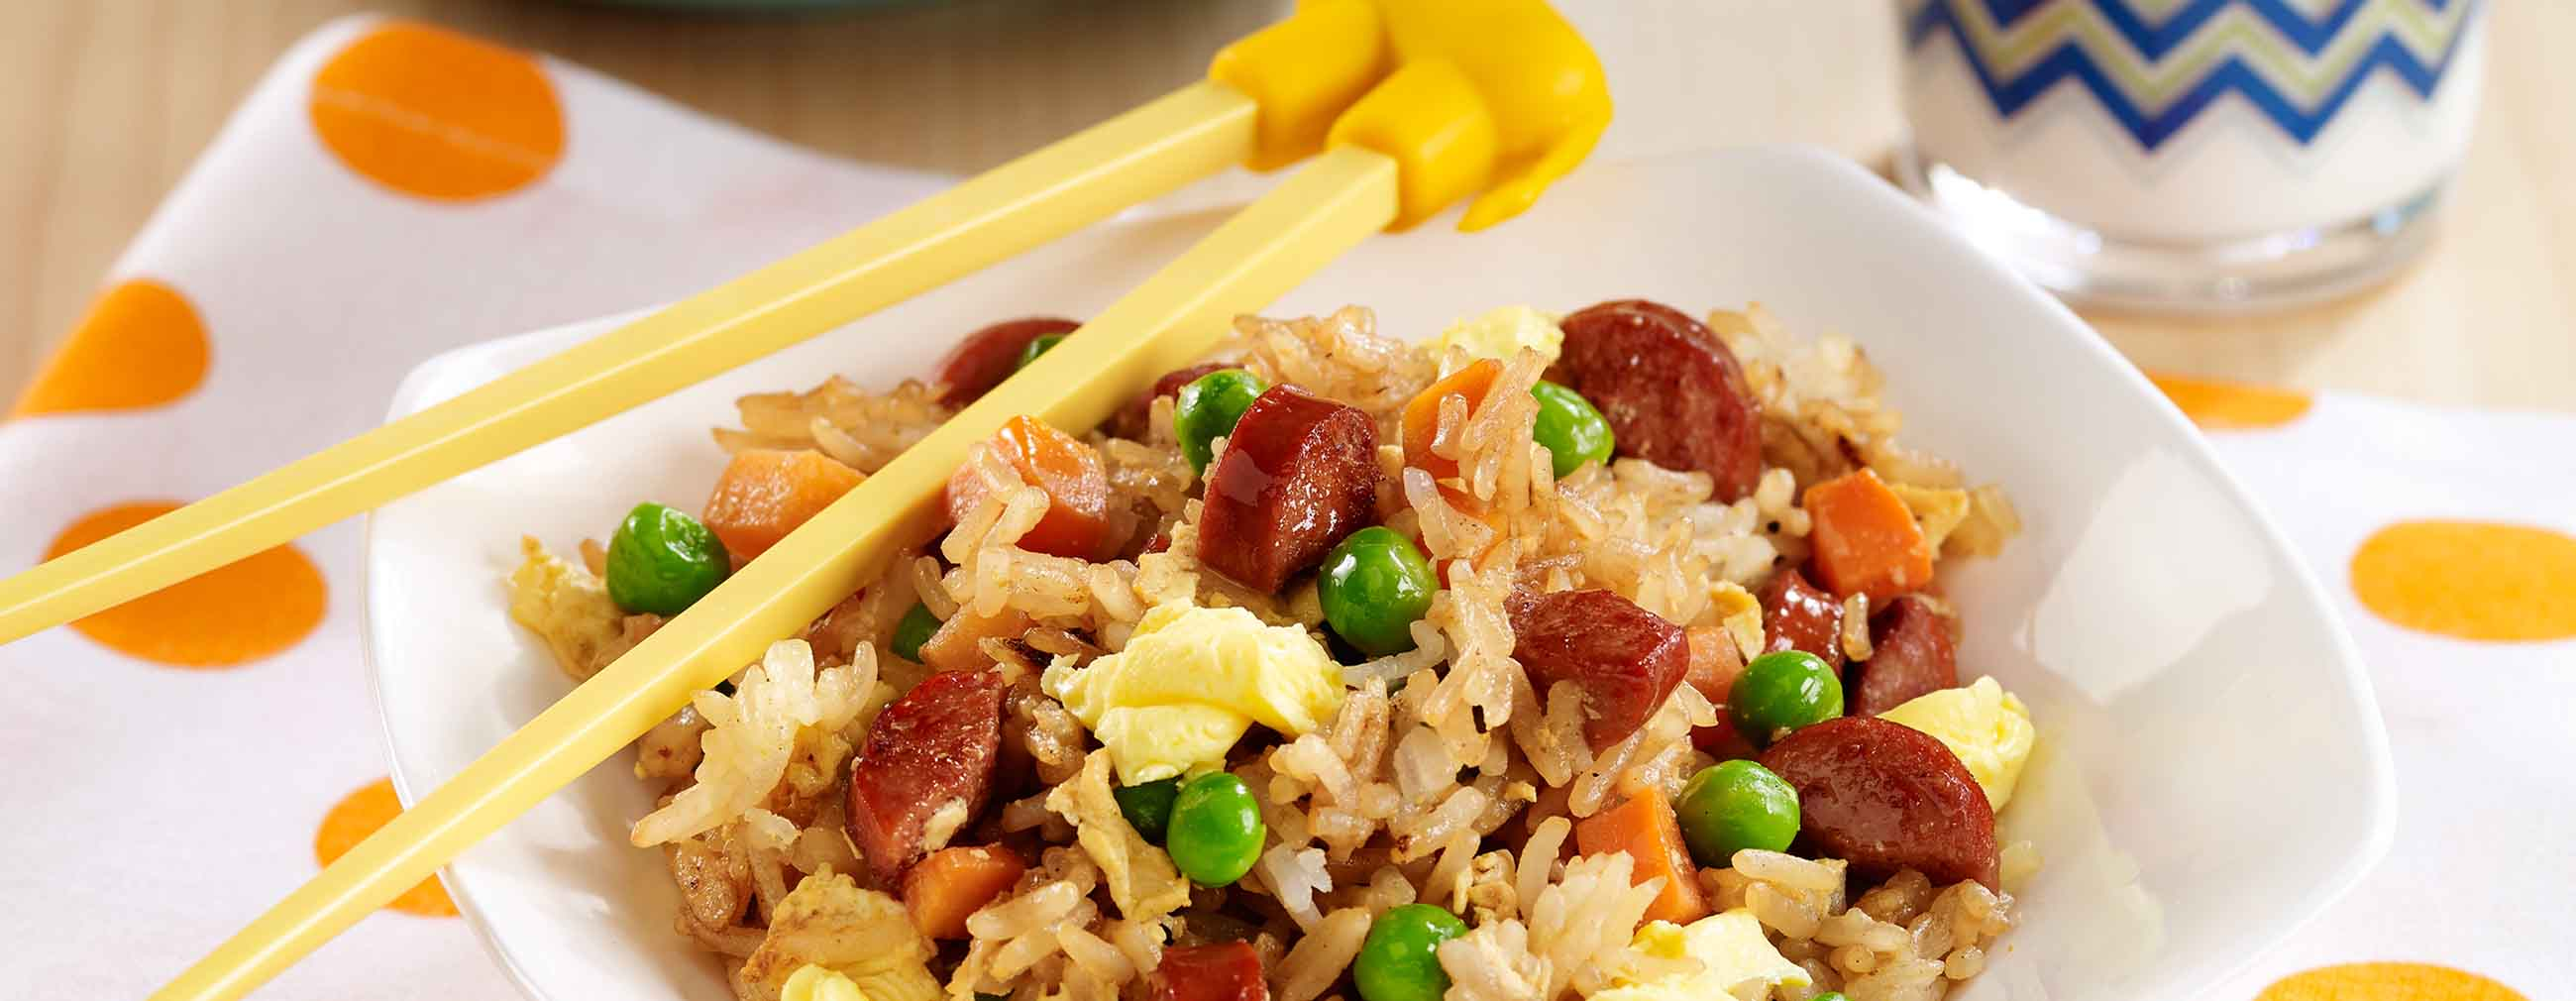 Hot Dog Fried Rice Ready Set Eat